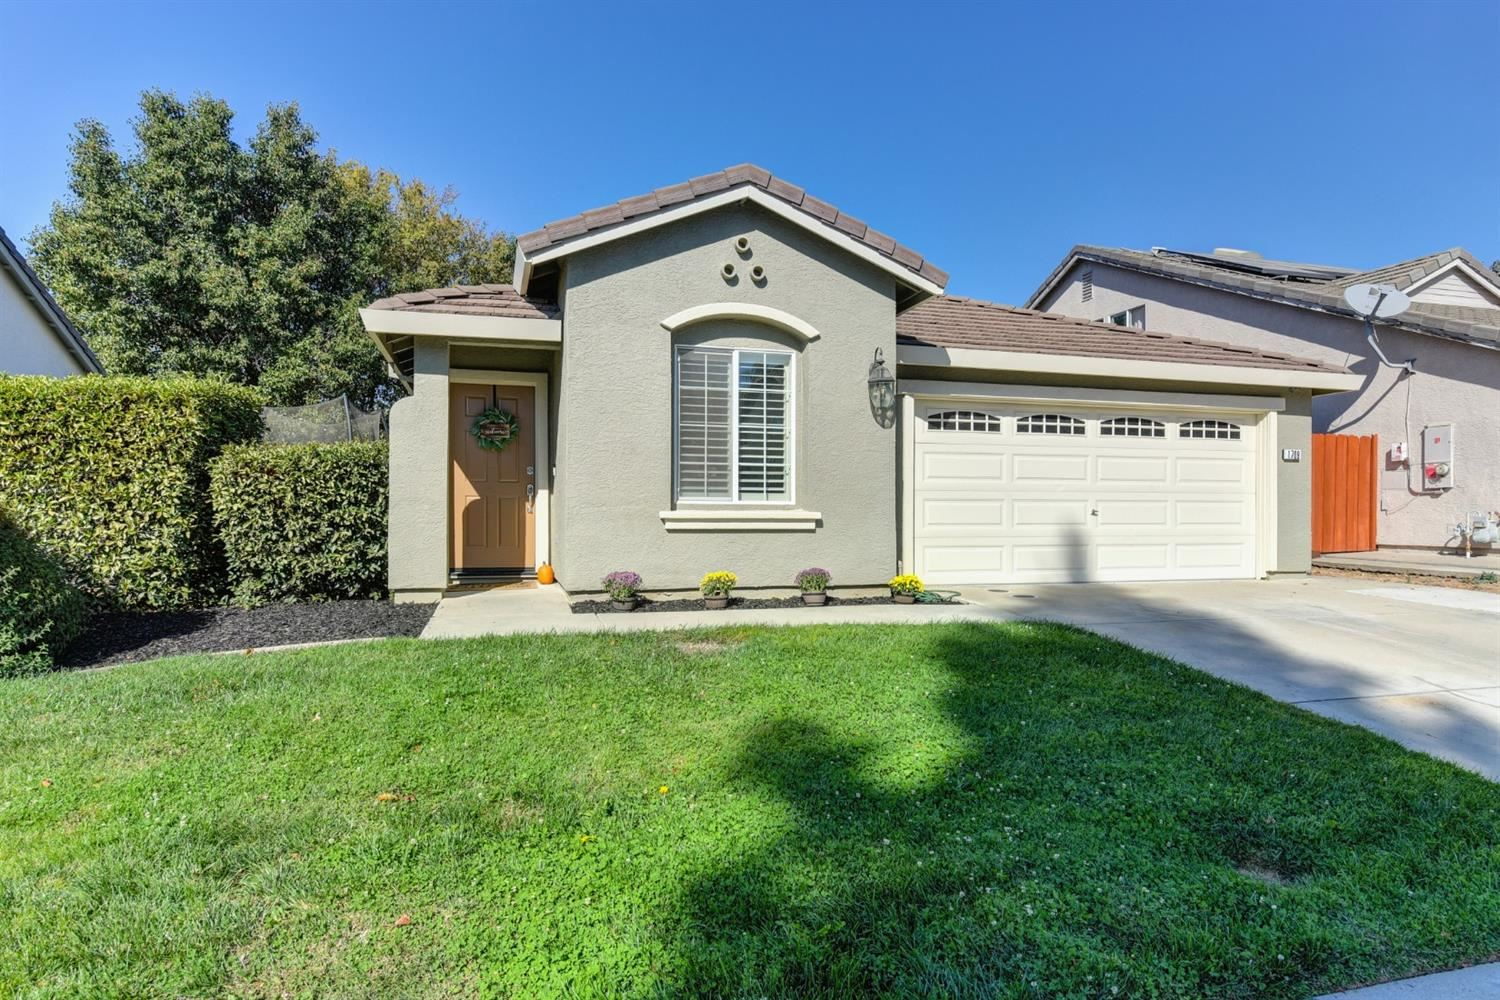 Photo of 1709 Sharifa Way, Roseville, CA 95747 (MLS # 20063944)